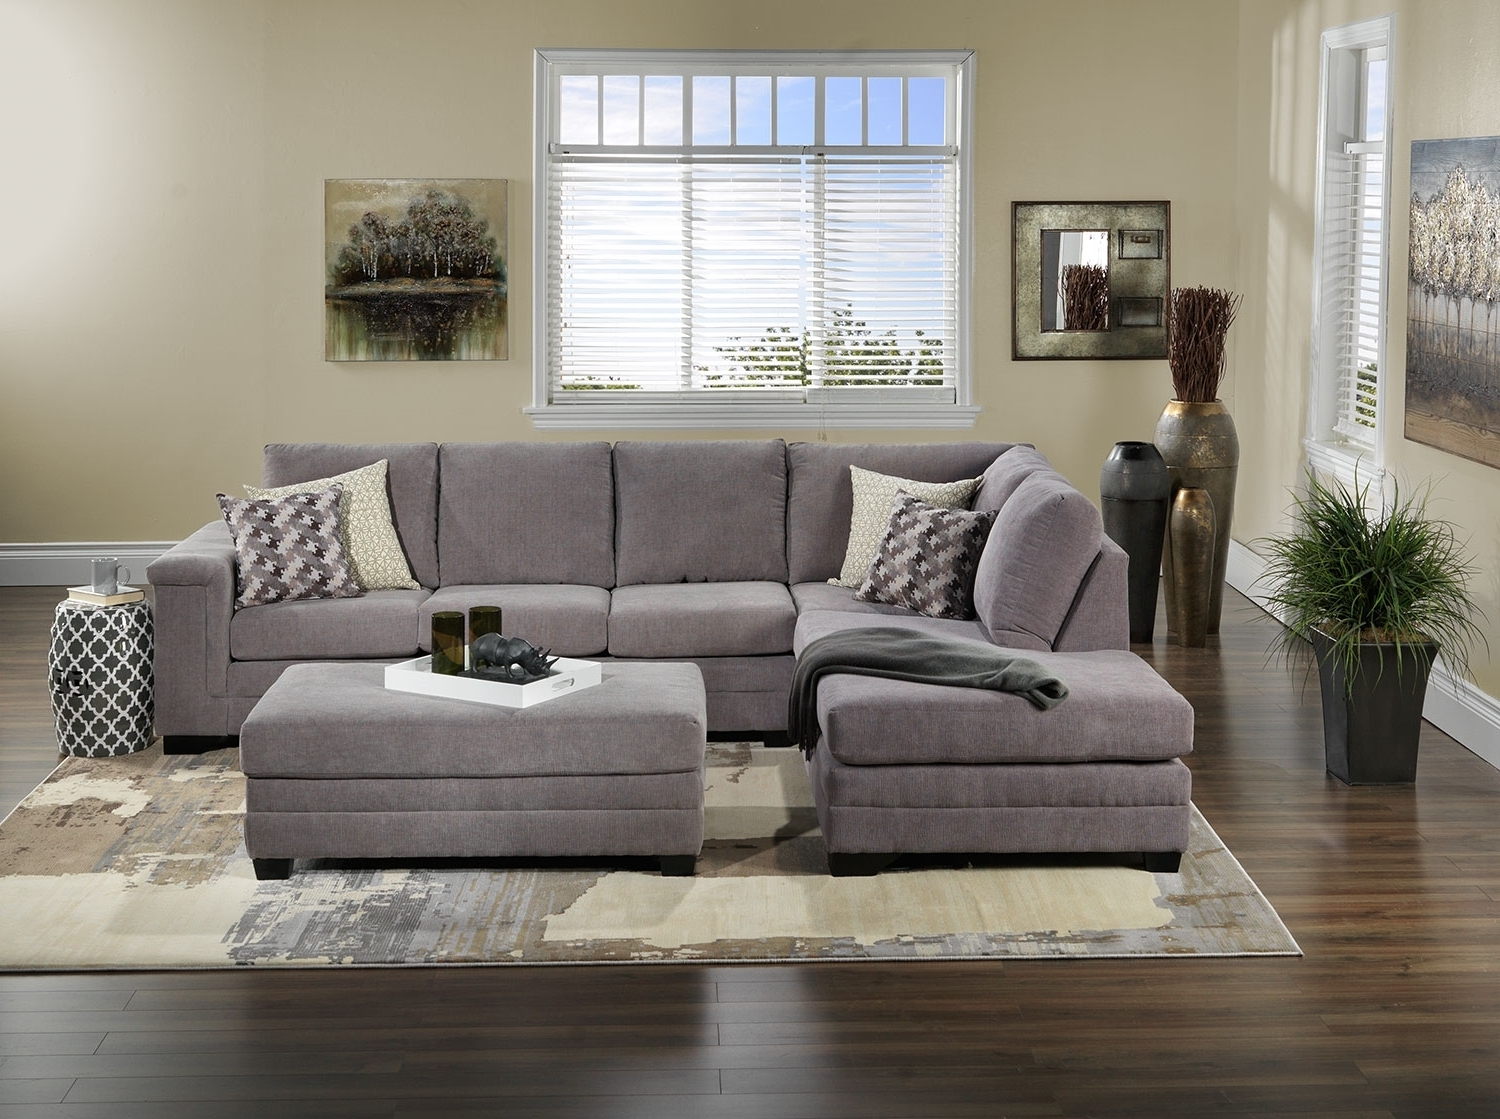 2019 Leons Sectional Sofas Regarding Leighton 2 Piece Sectional With Left Facing Chaise – Grey (View 2 of 20)